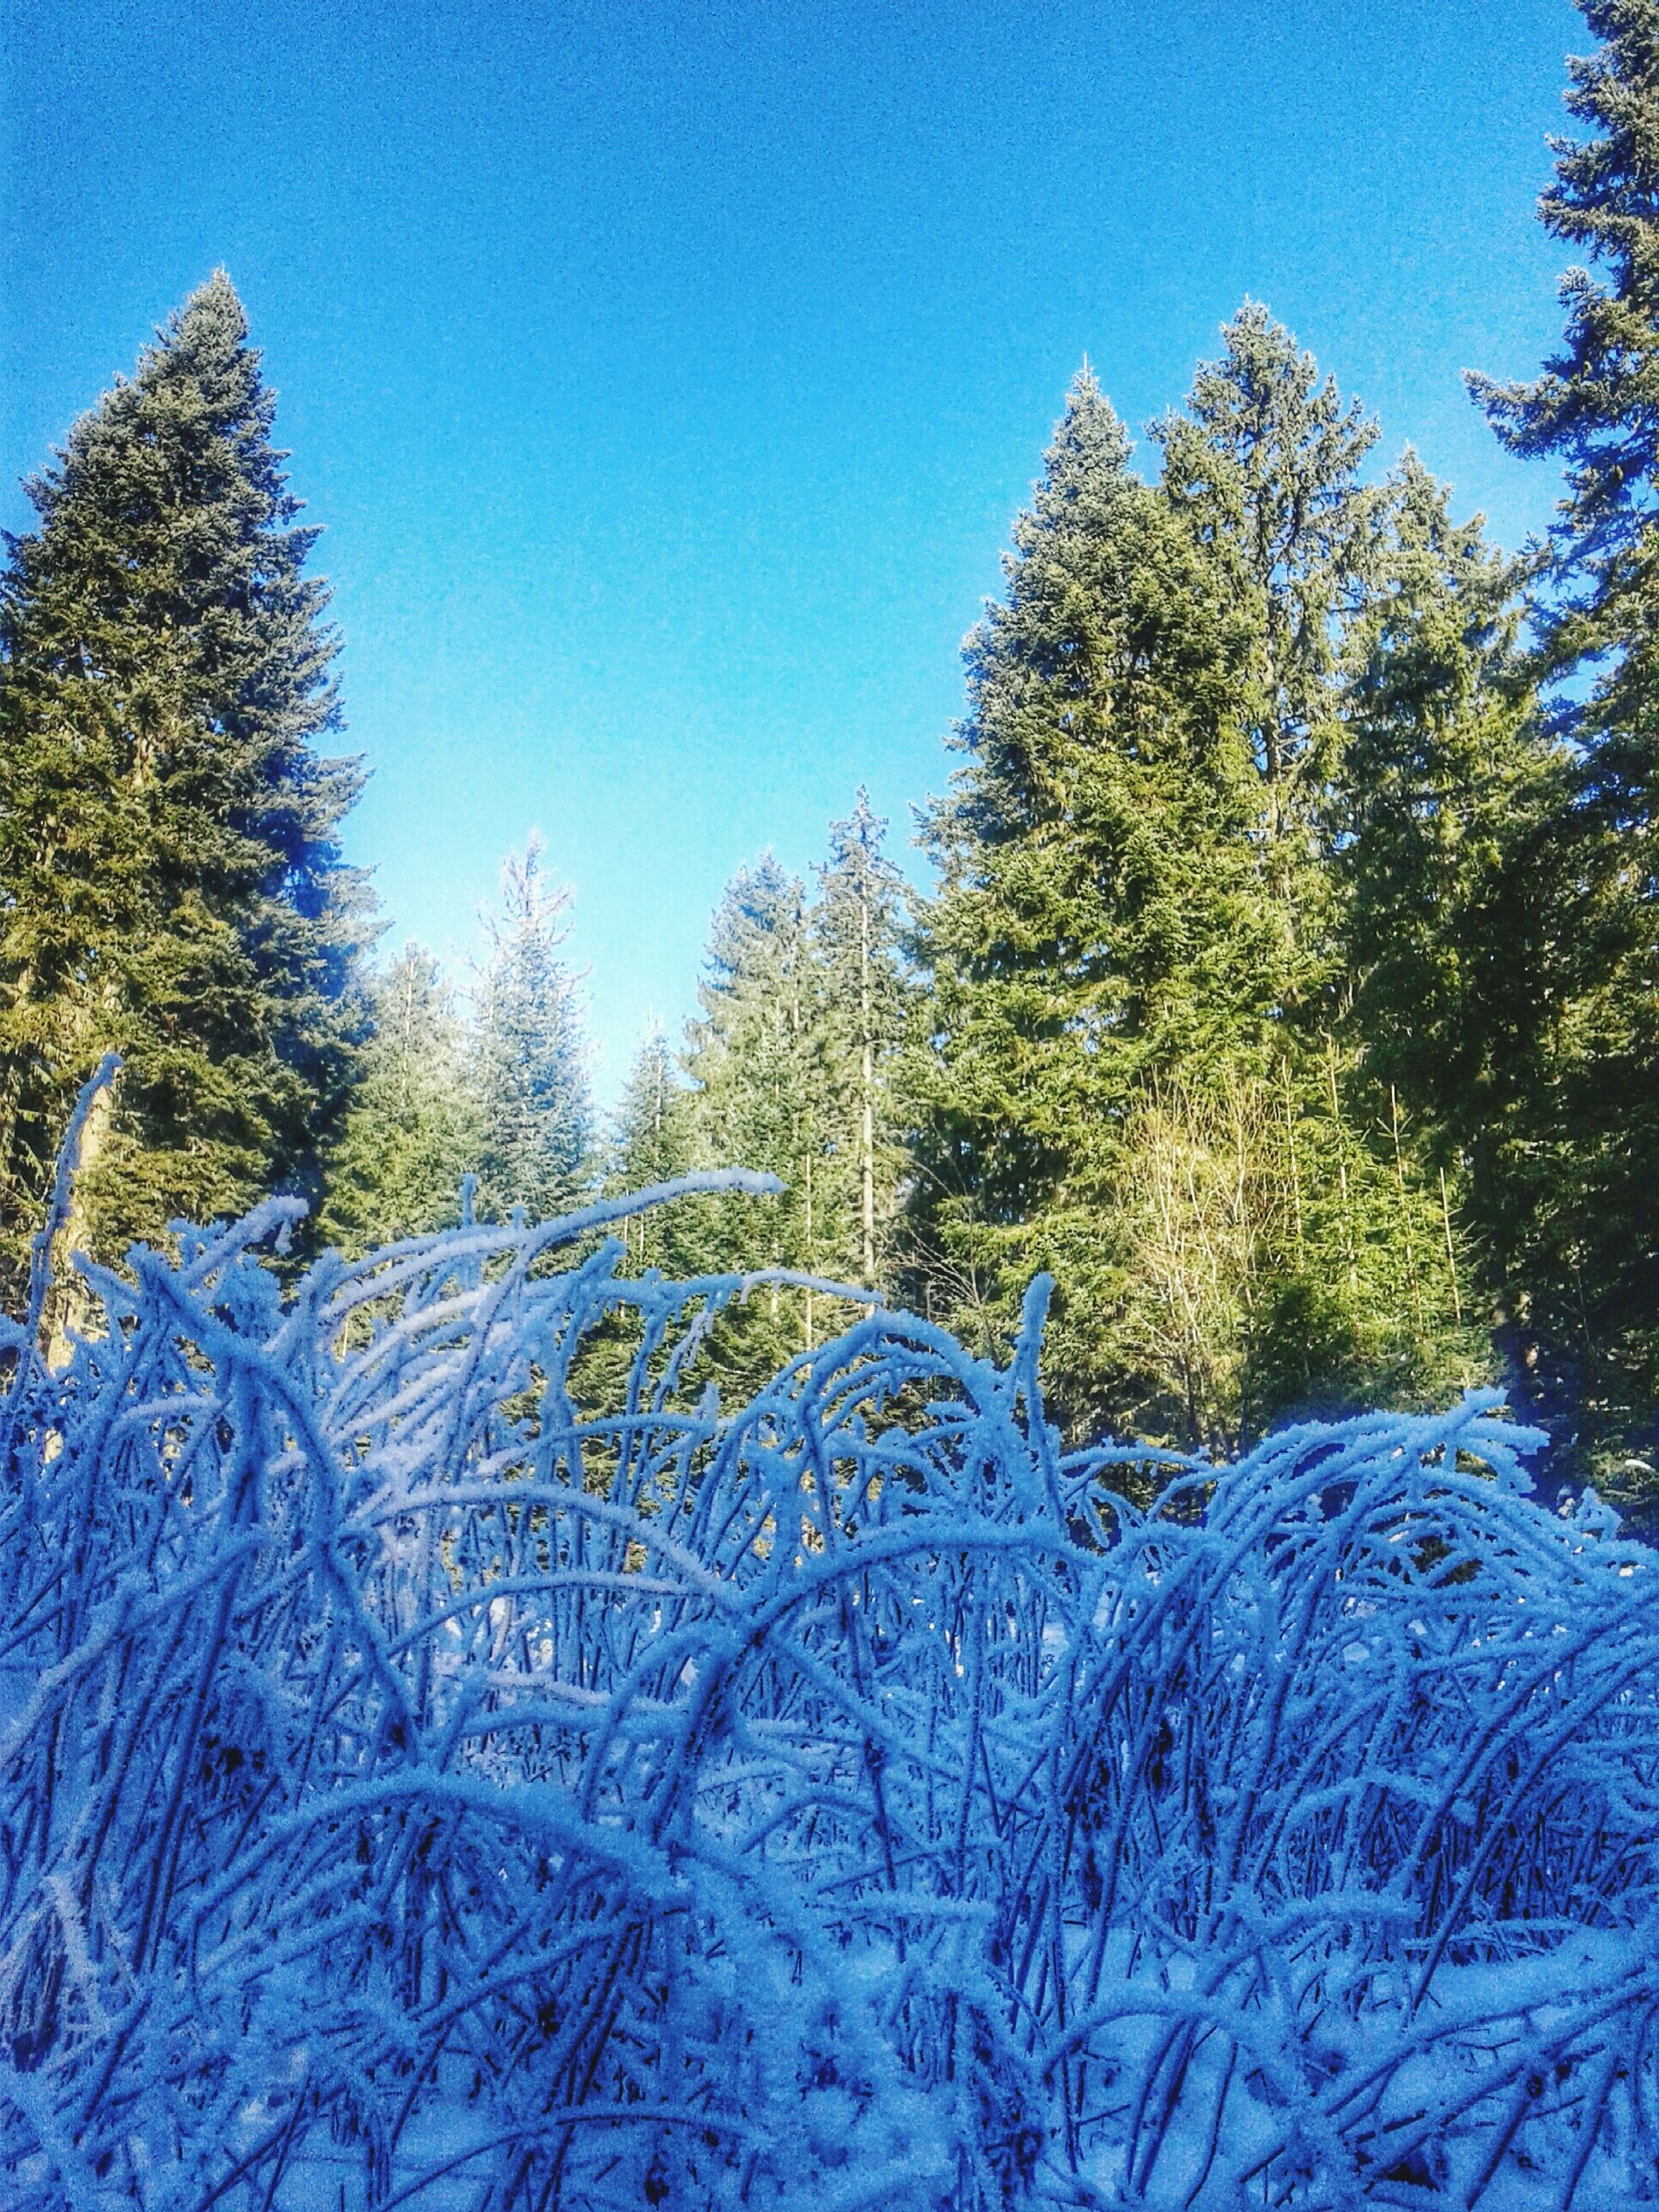 snow, winter, cold temperature, tree, blue, clear sky, season, covering, tranquility, nature, tranquil scene, beauty in nature, white color, scenics, frozen, sunlight, growth, covered, weather, day